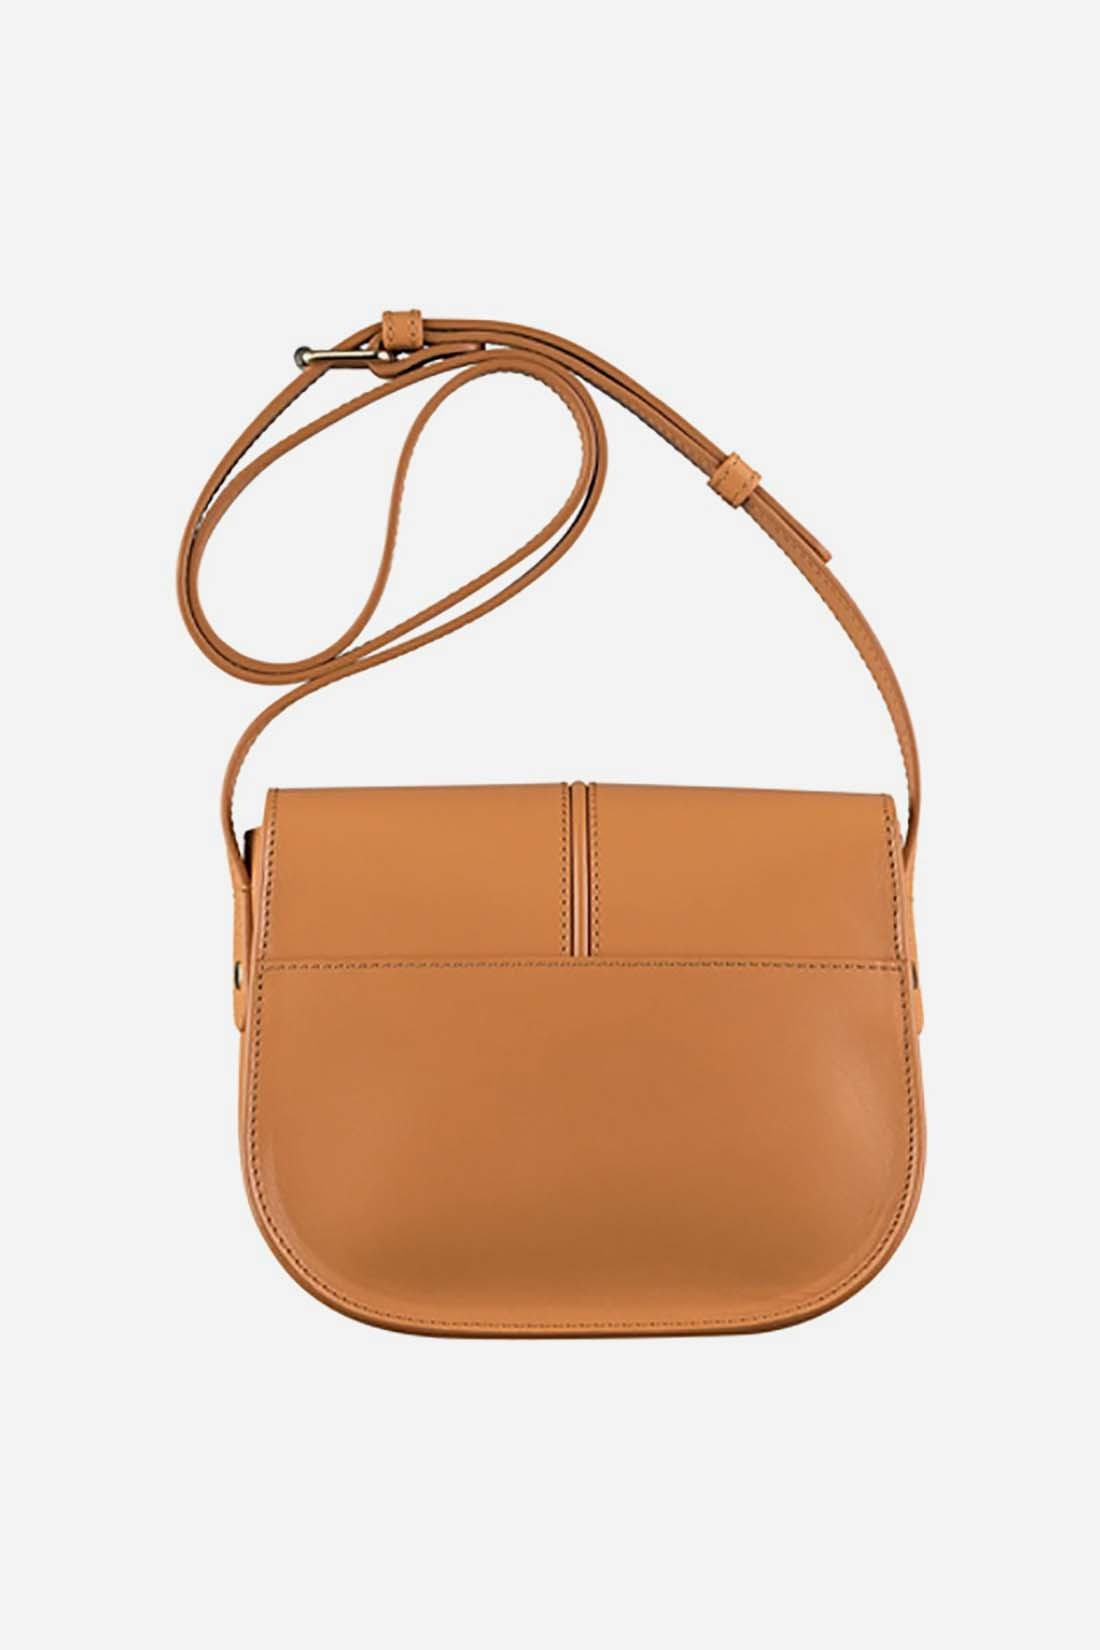 A.P.C. FOR WOMAN / Sac betty Ocre